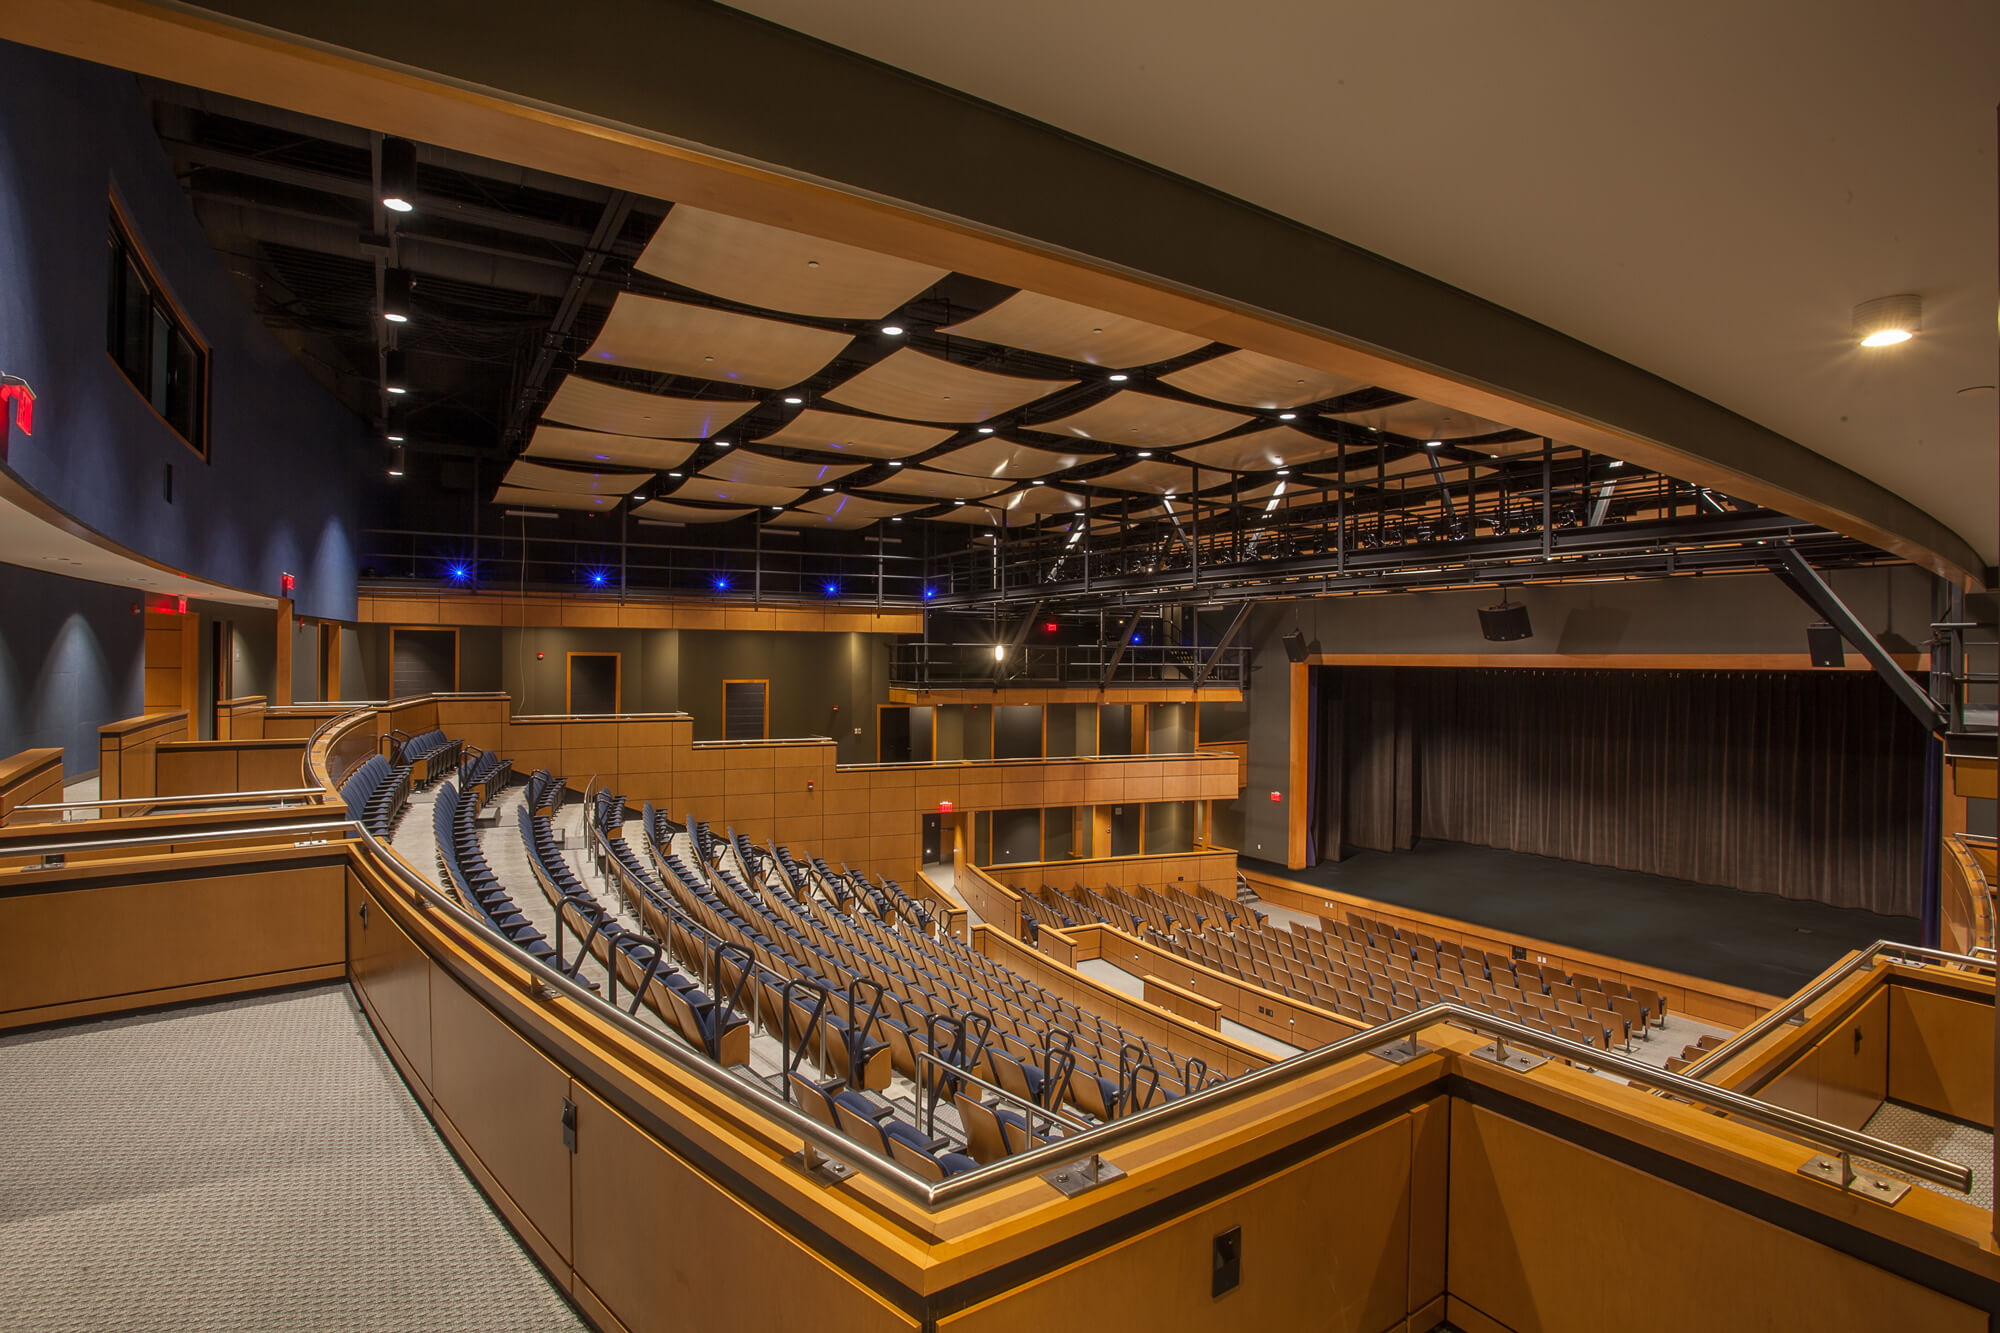 View of the auditorium with warm wooden tones and dark blue accents.